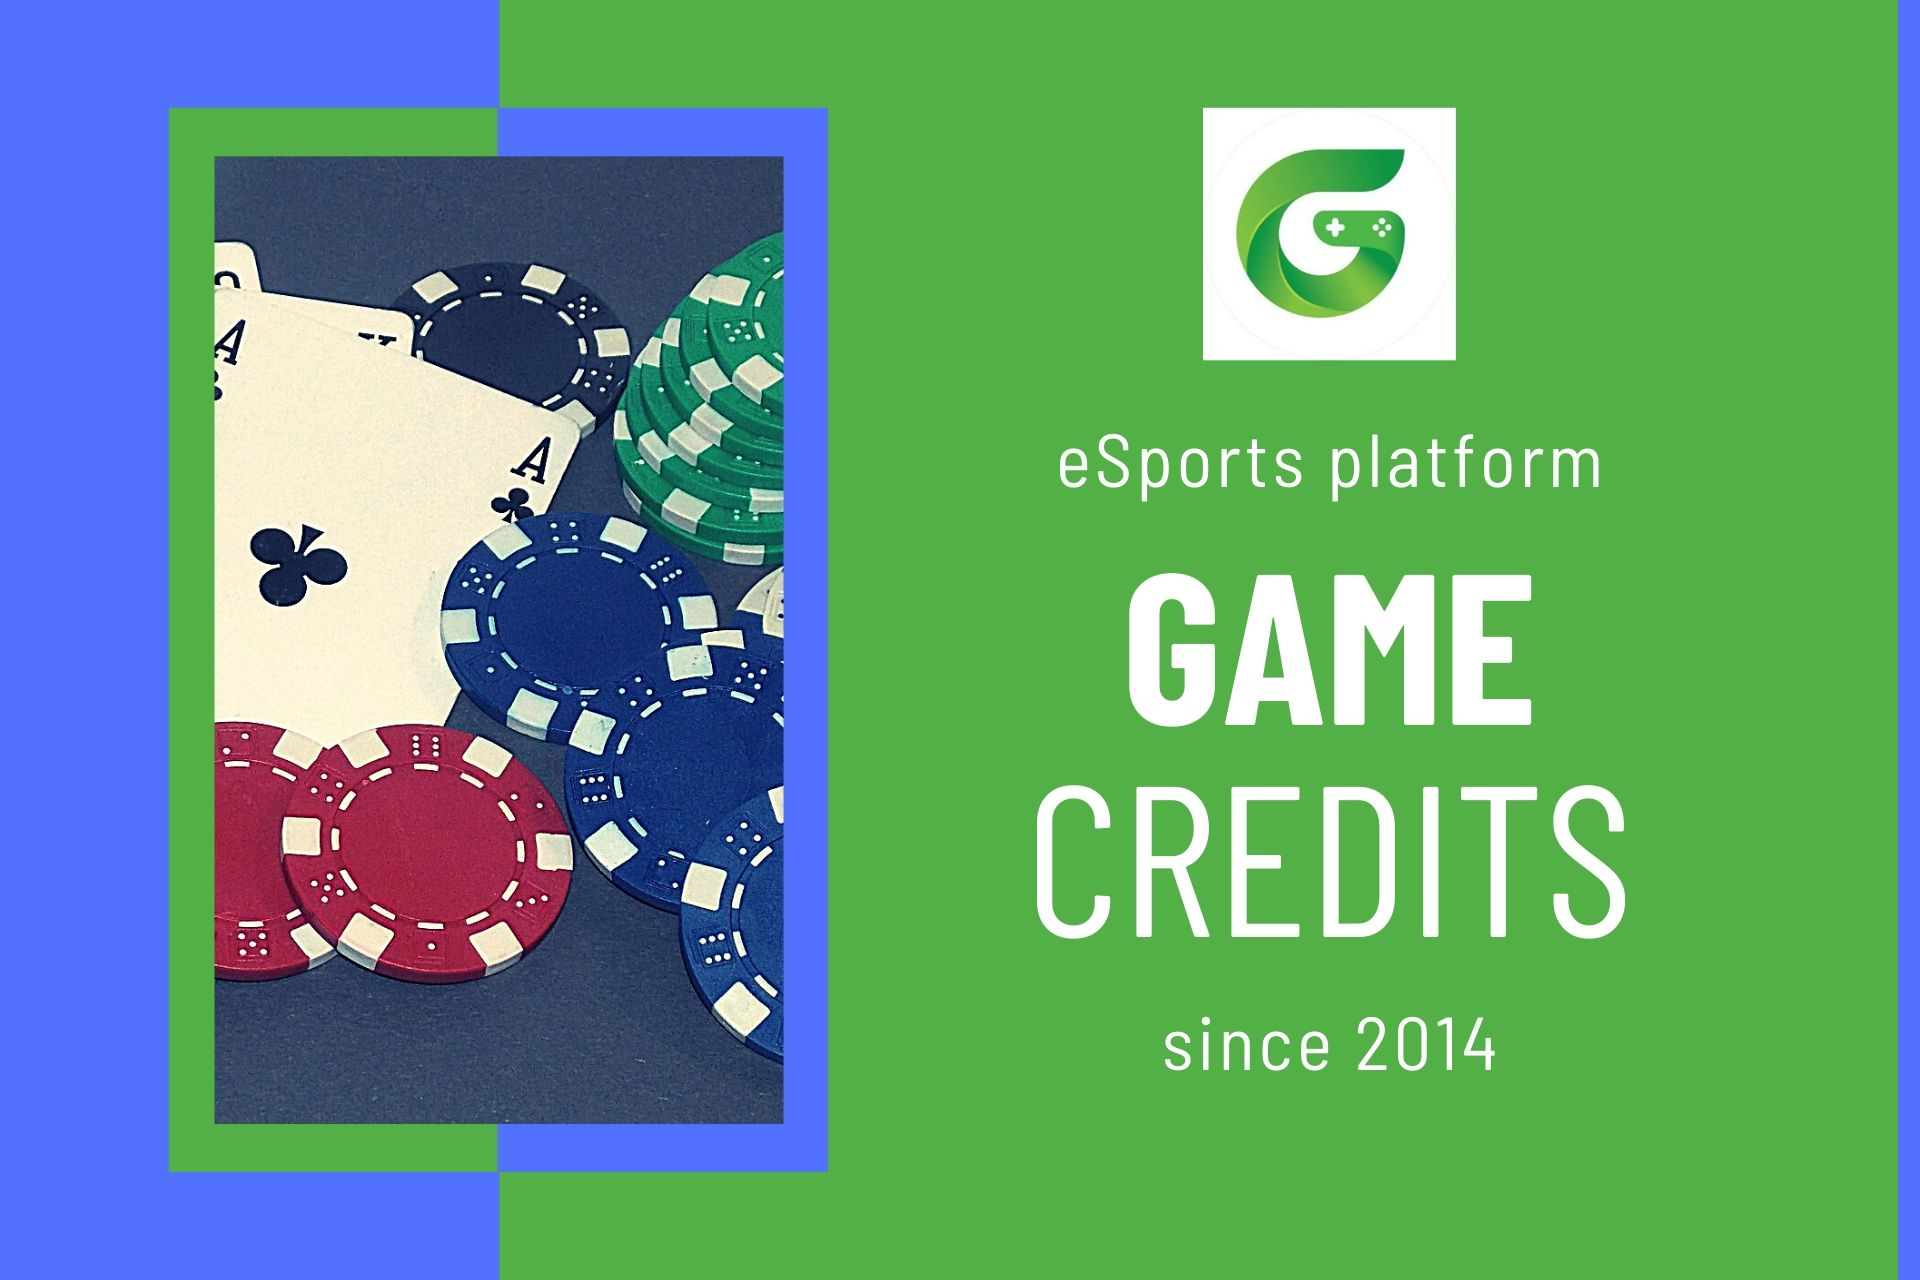 eSports Platform Game Credits Envisions Blockchain Ownership for Every Gamer